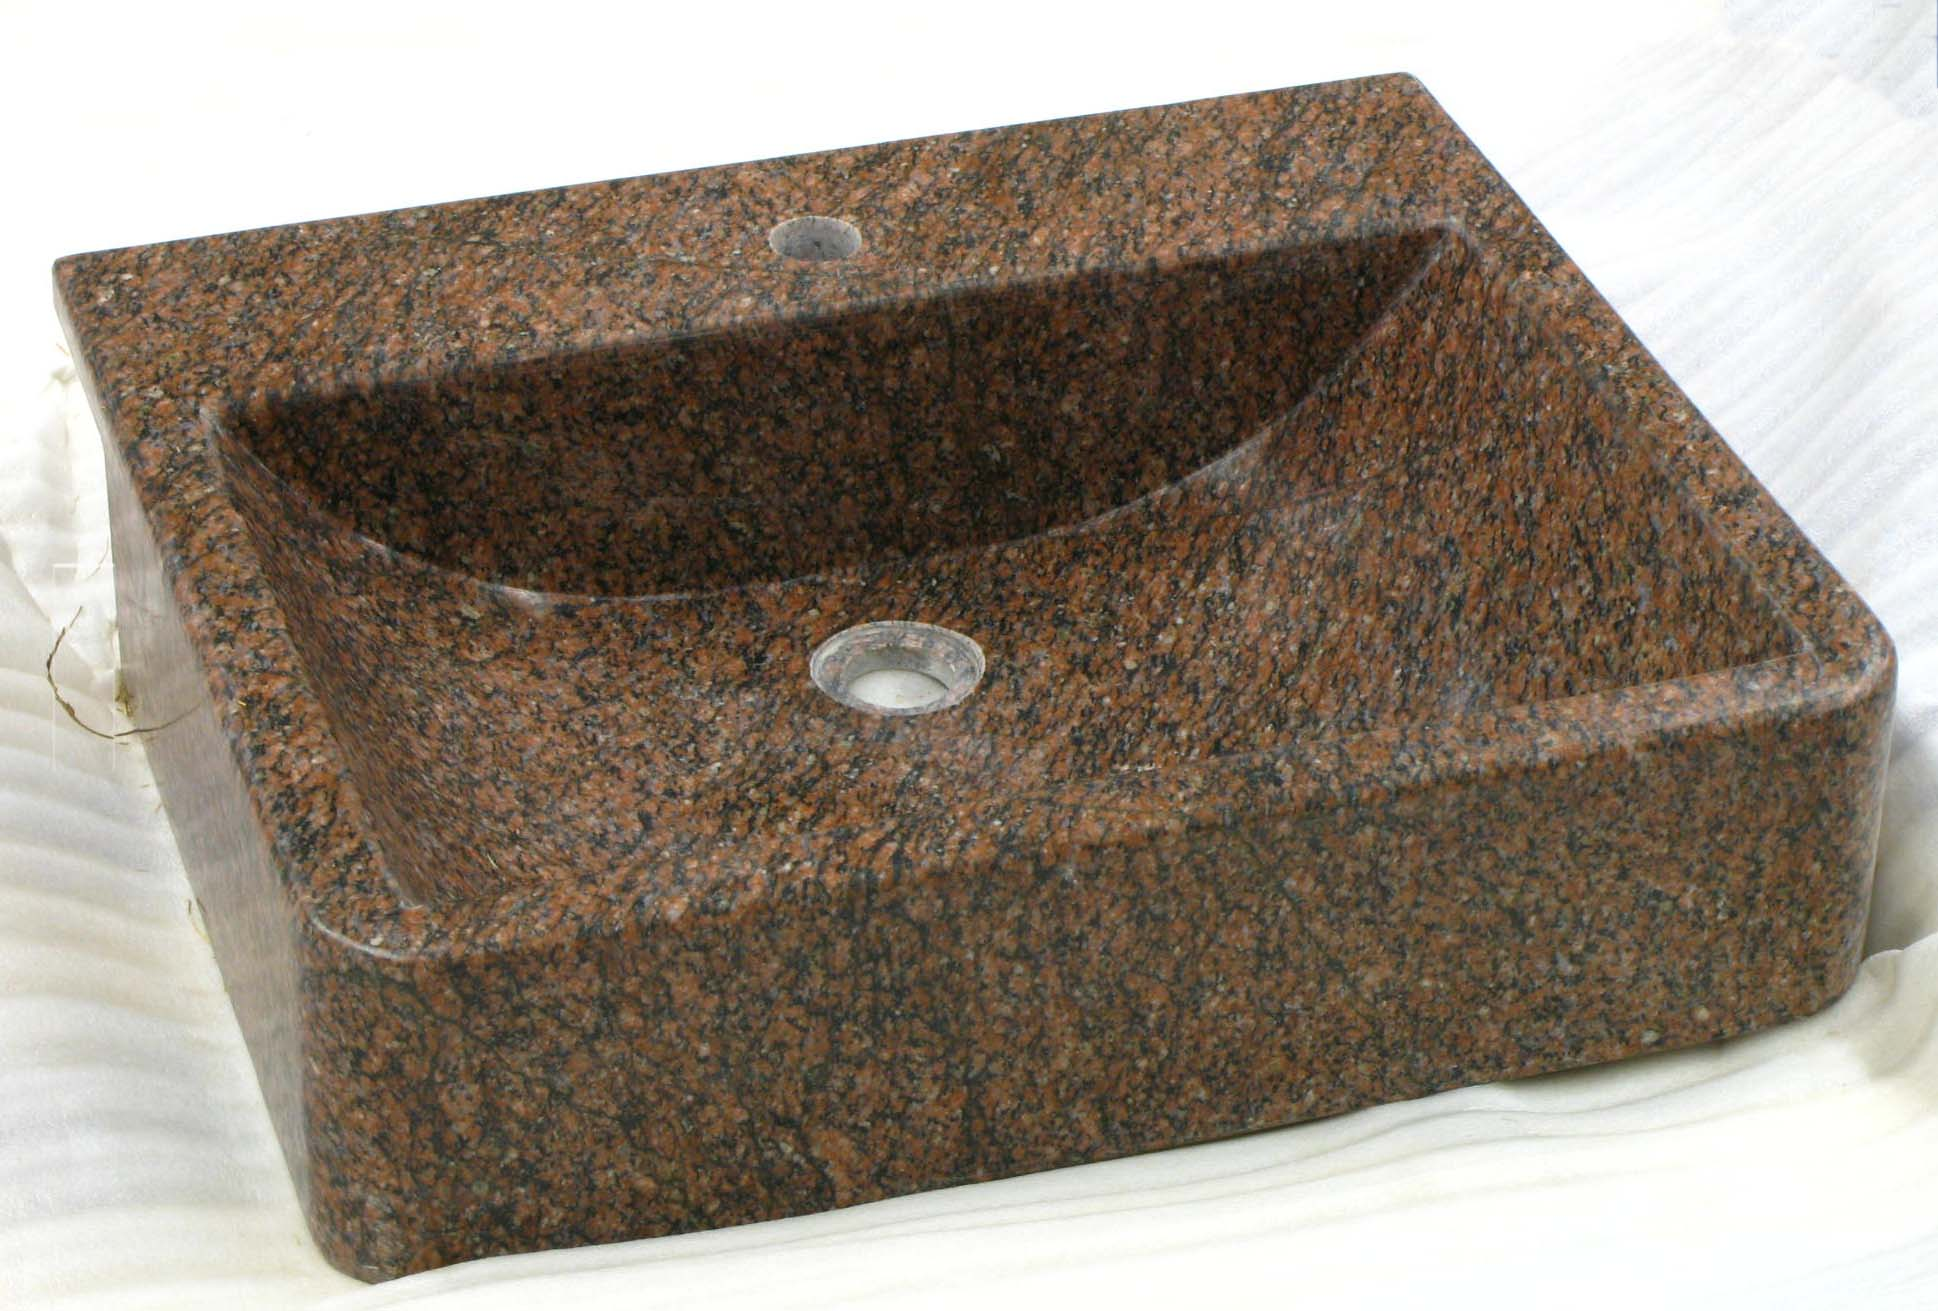 Canyon Bath granite sinks